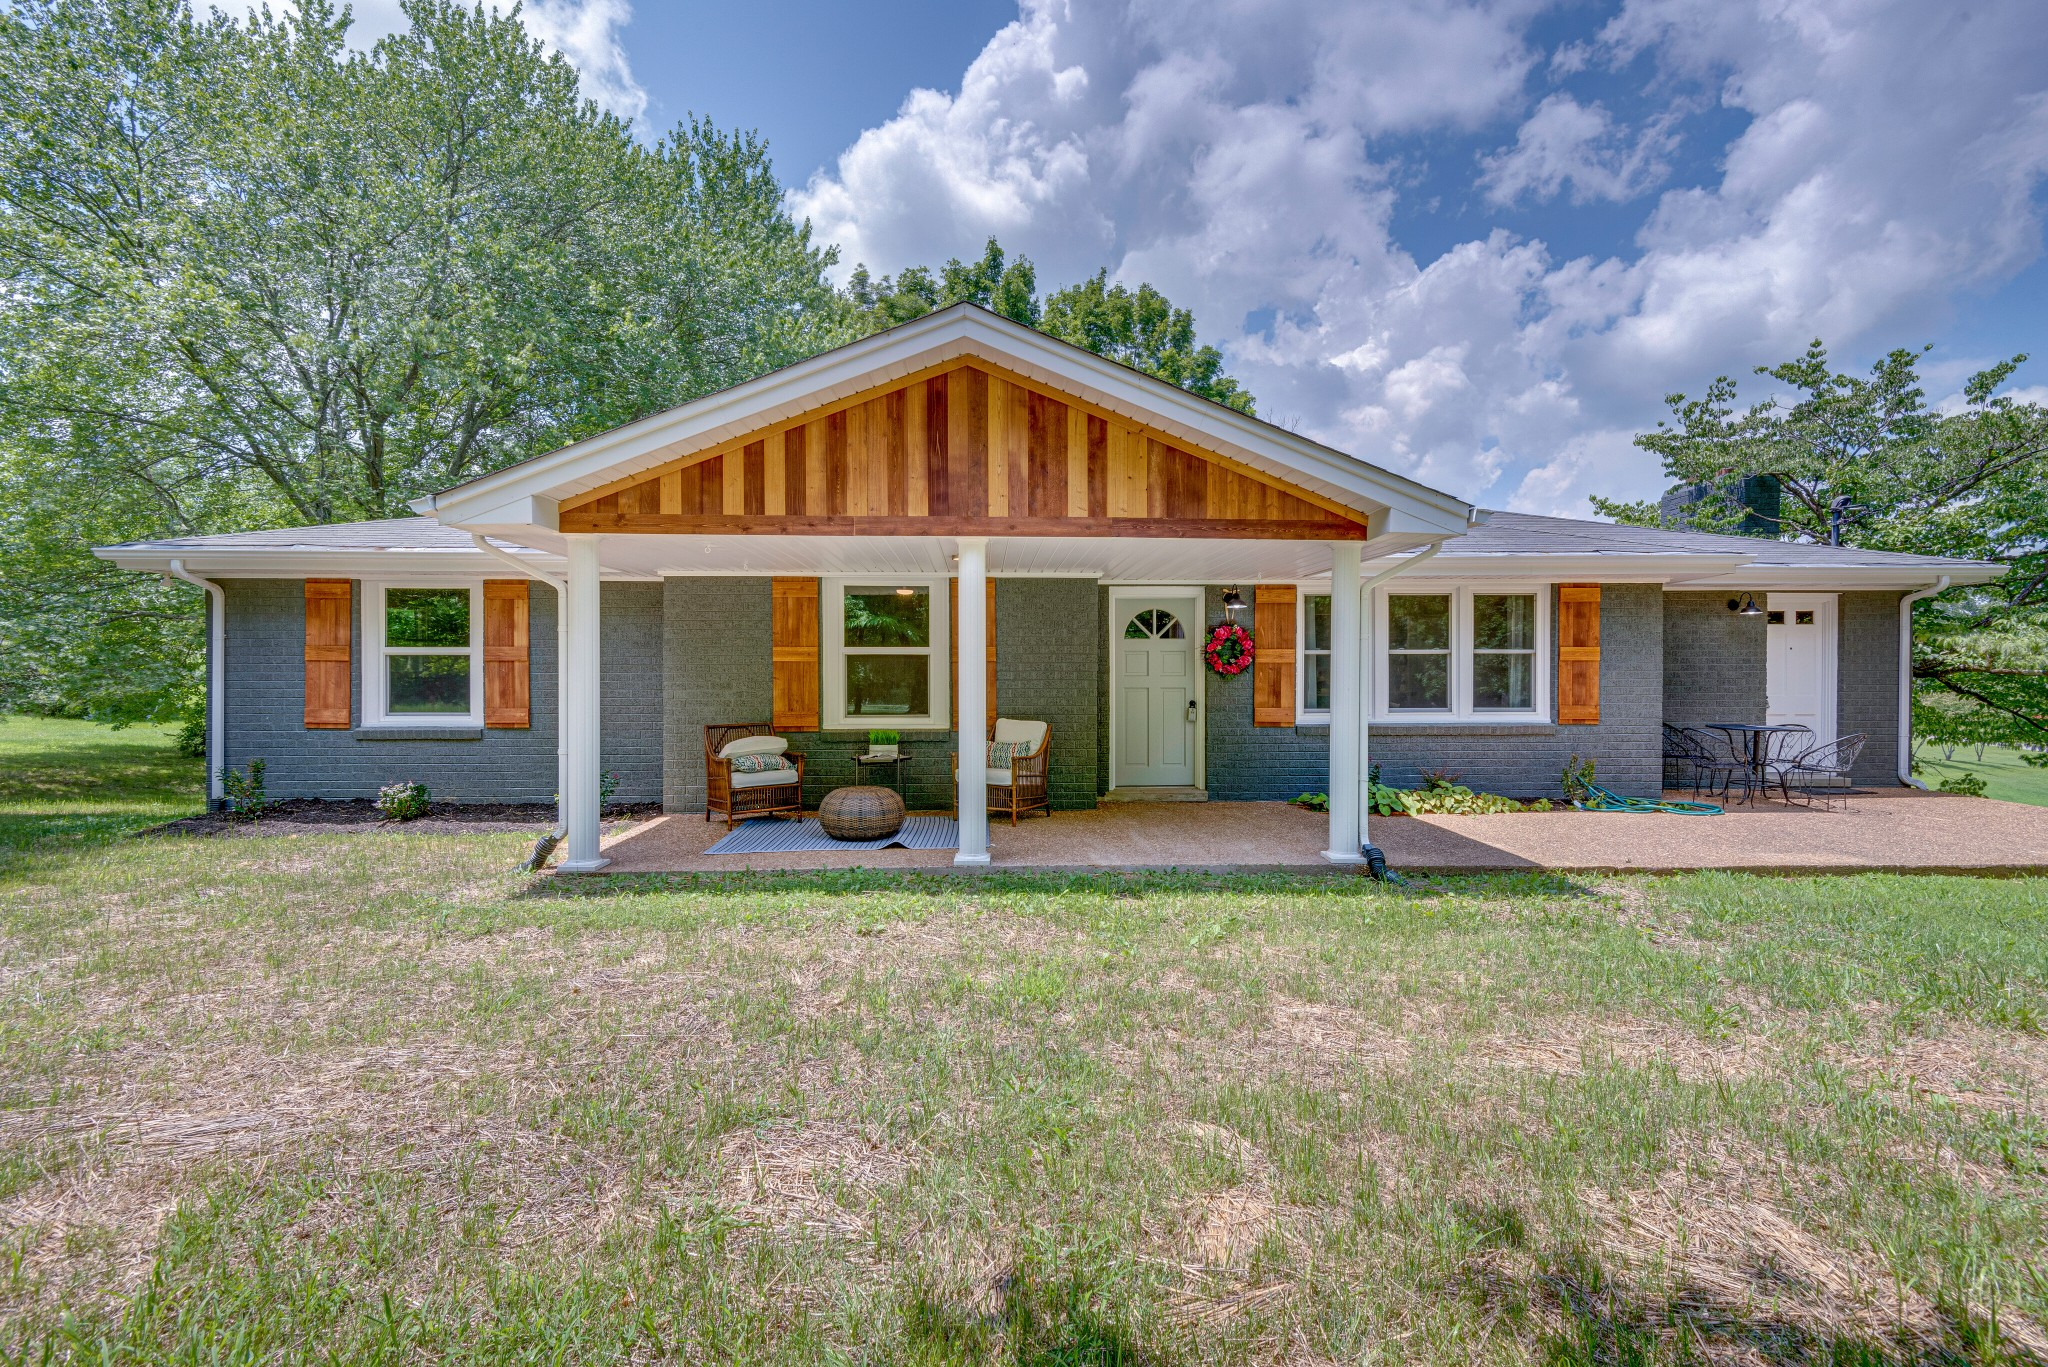 Distinctively updated Fairview home* This home sits on a beautiful shaded 1 acre lot*  Finished hardwood floors throughout*  All new stainless steel appliances* QUARTZITE countertops* DOUBLE MASTER VANITY* Large front porch to enjoy the beautiful Tennessee weather*